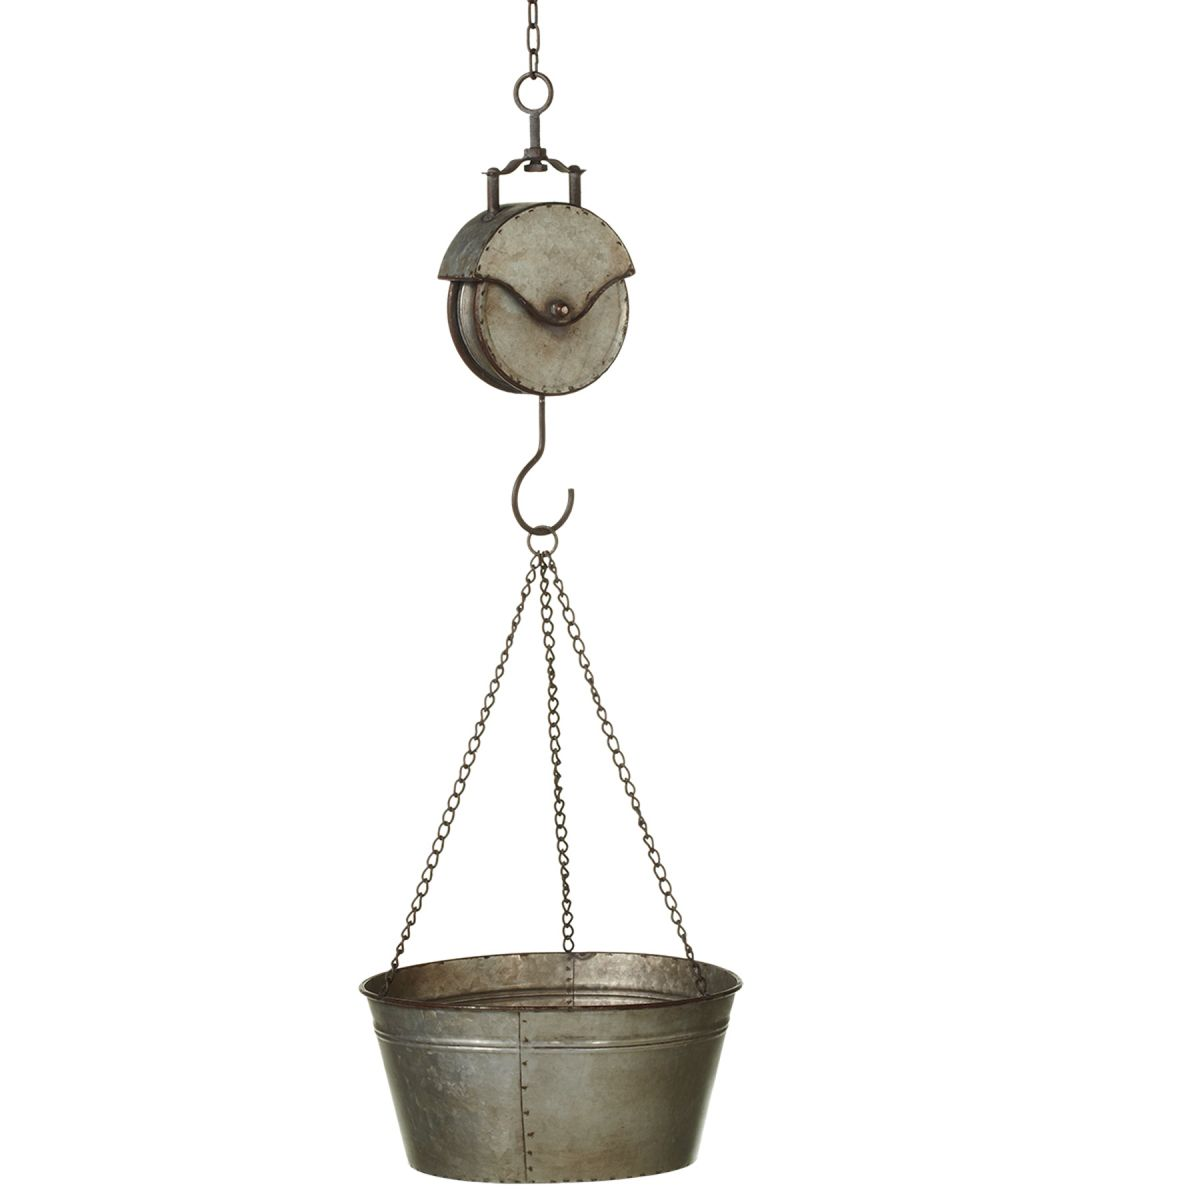 Rustic Pail and Pully Planter